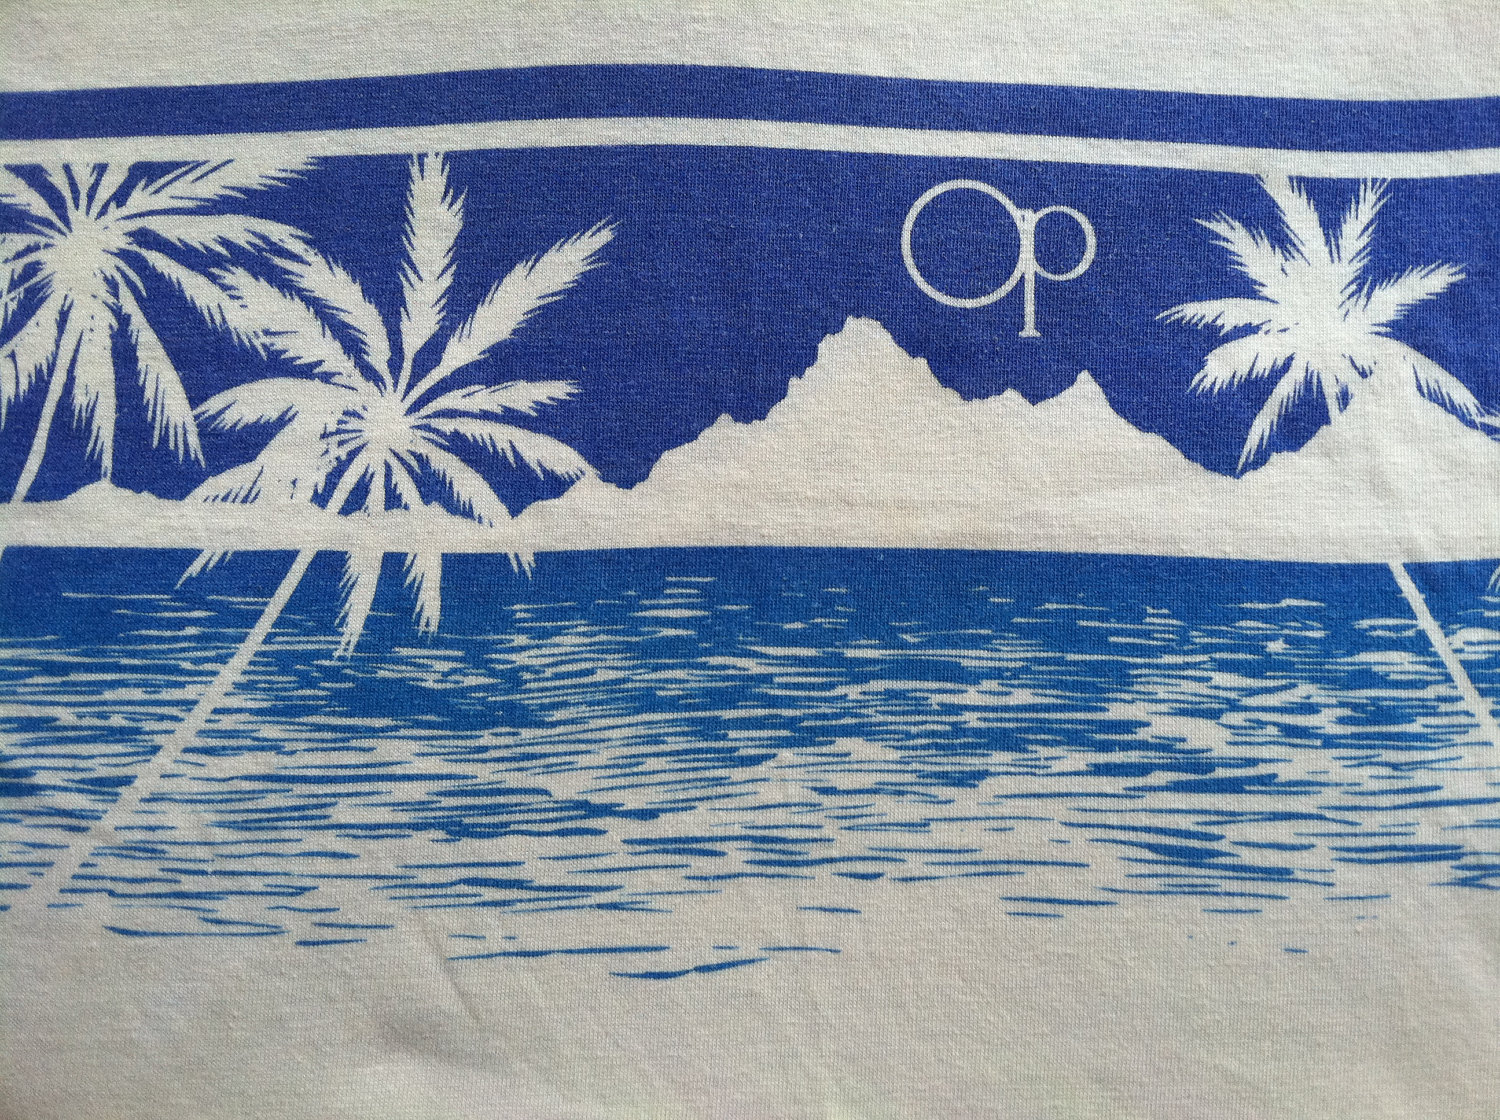 Ocean Pacific Apparel Designs, 1979 – 1989